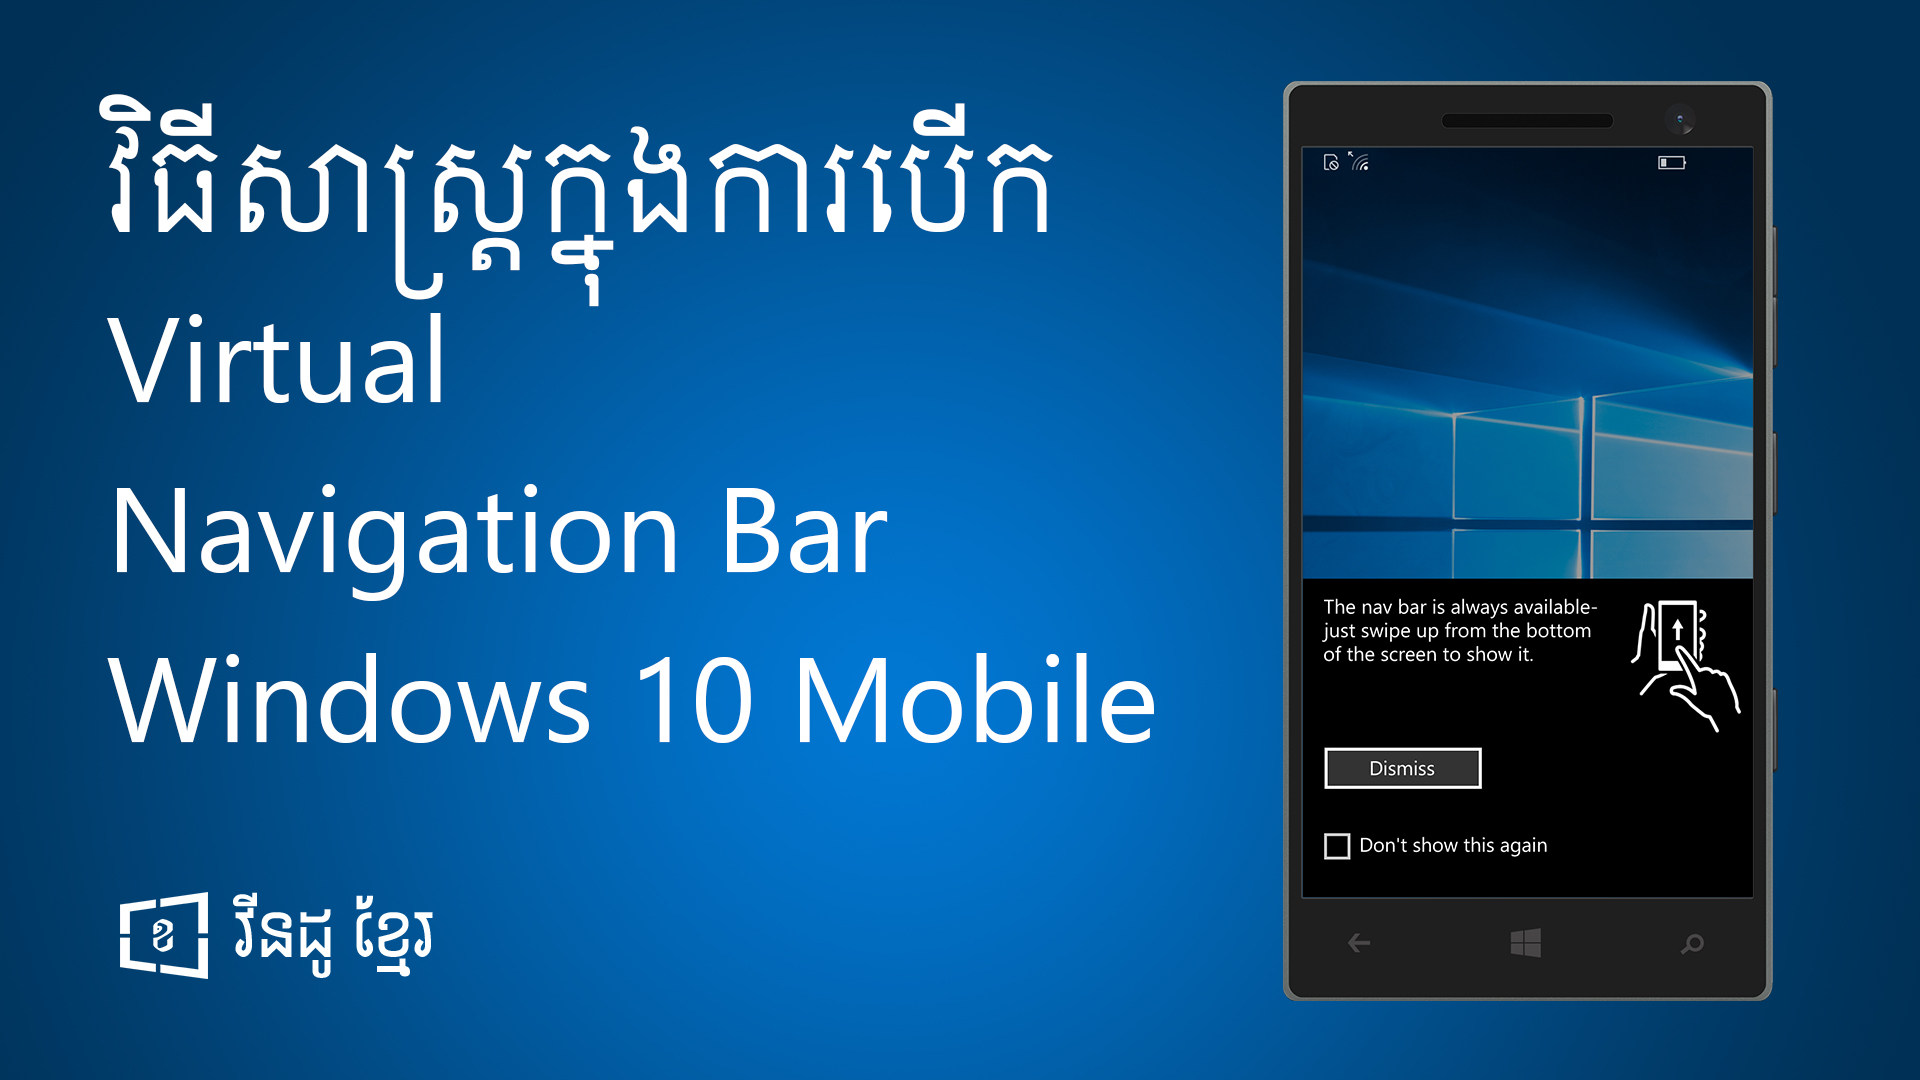 how-to-enable-virtual-navigation-bar-on-windows-10-mobile